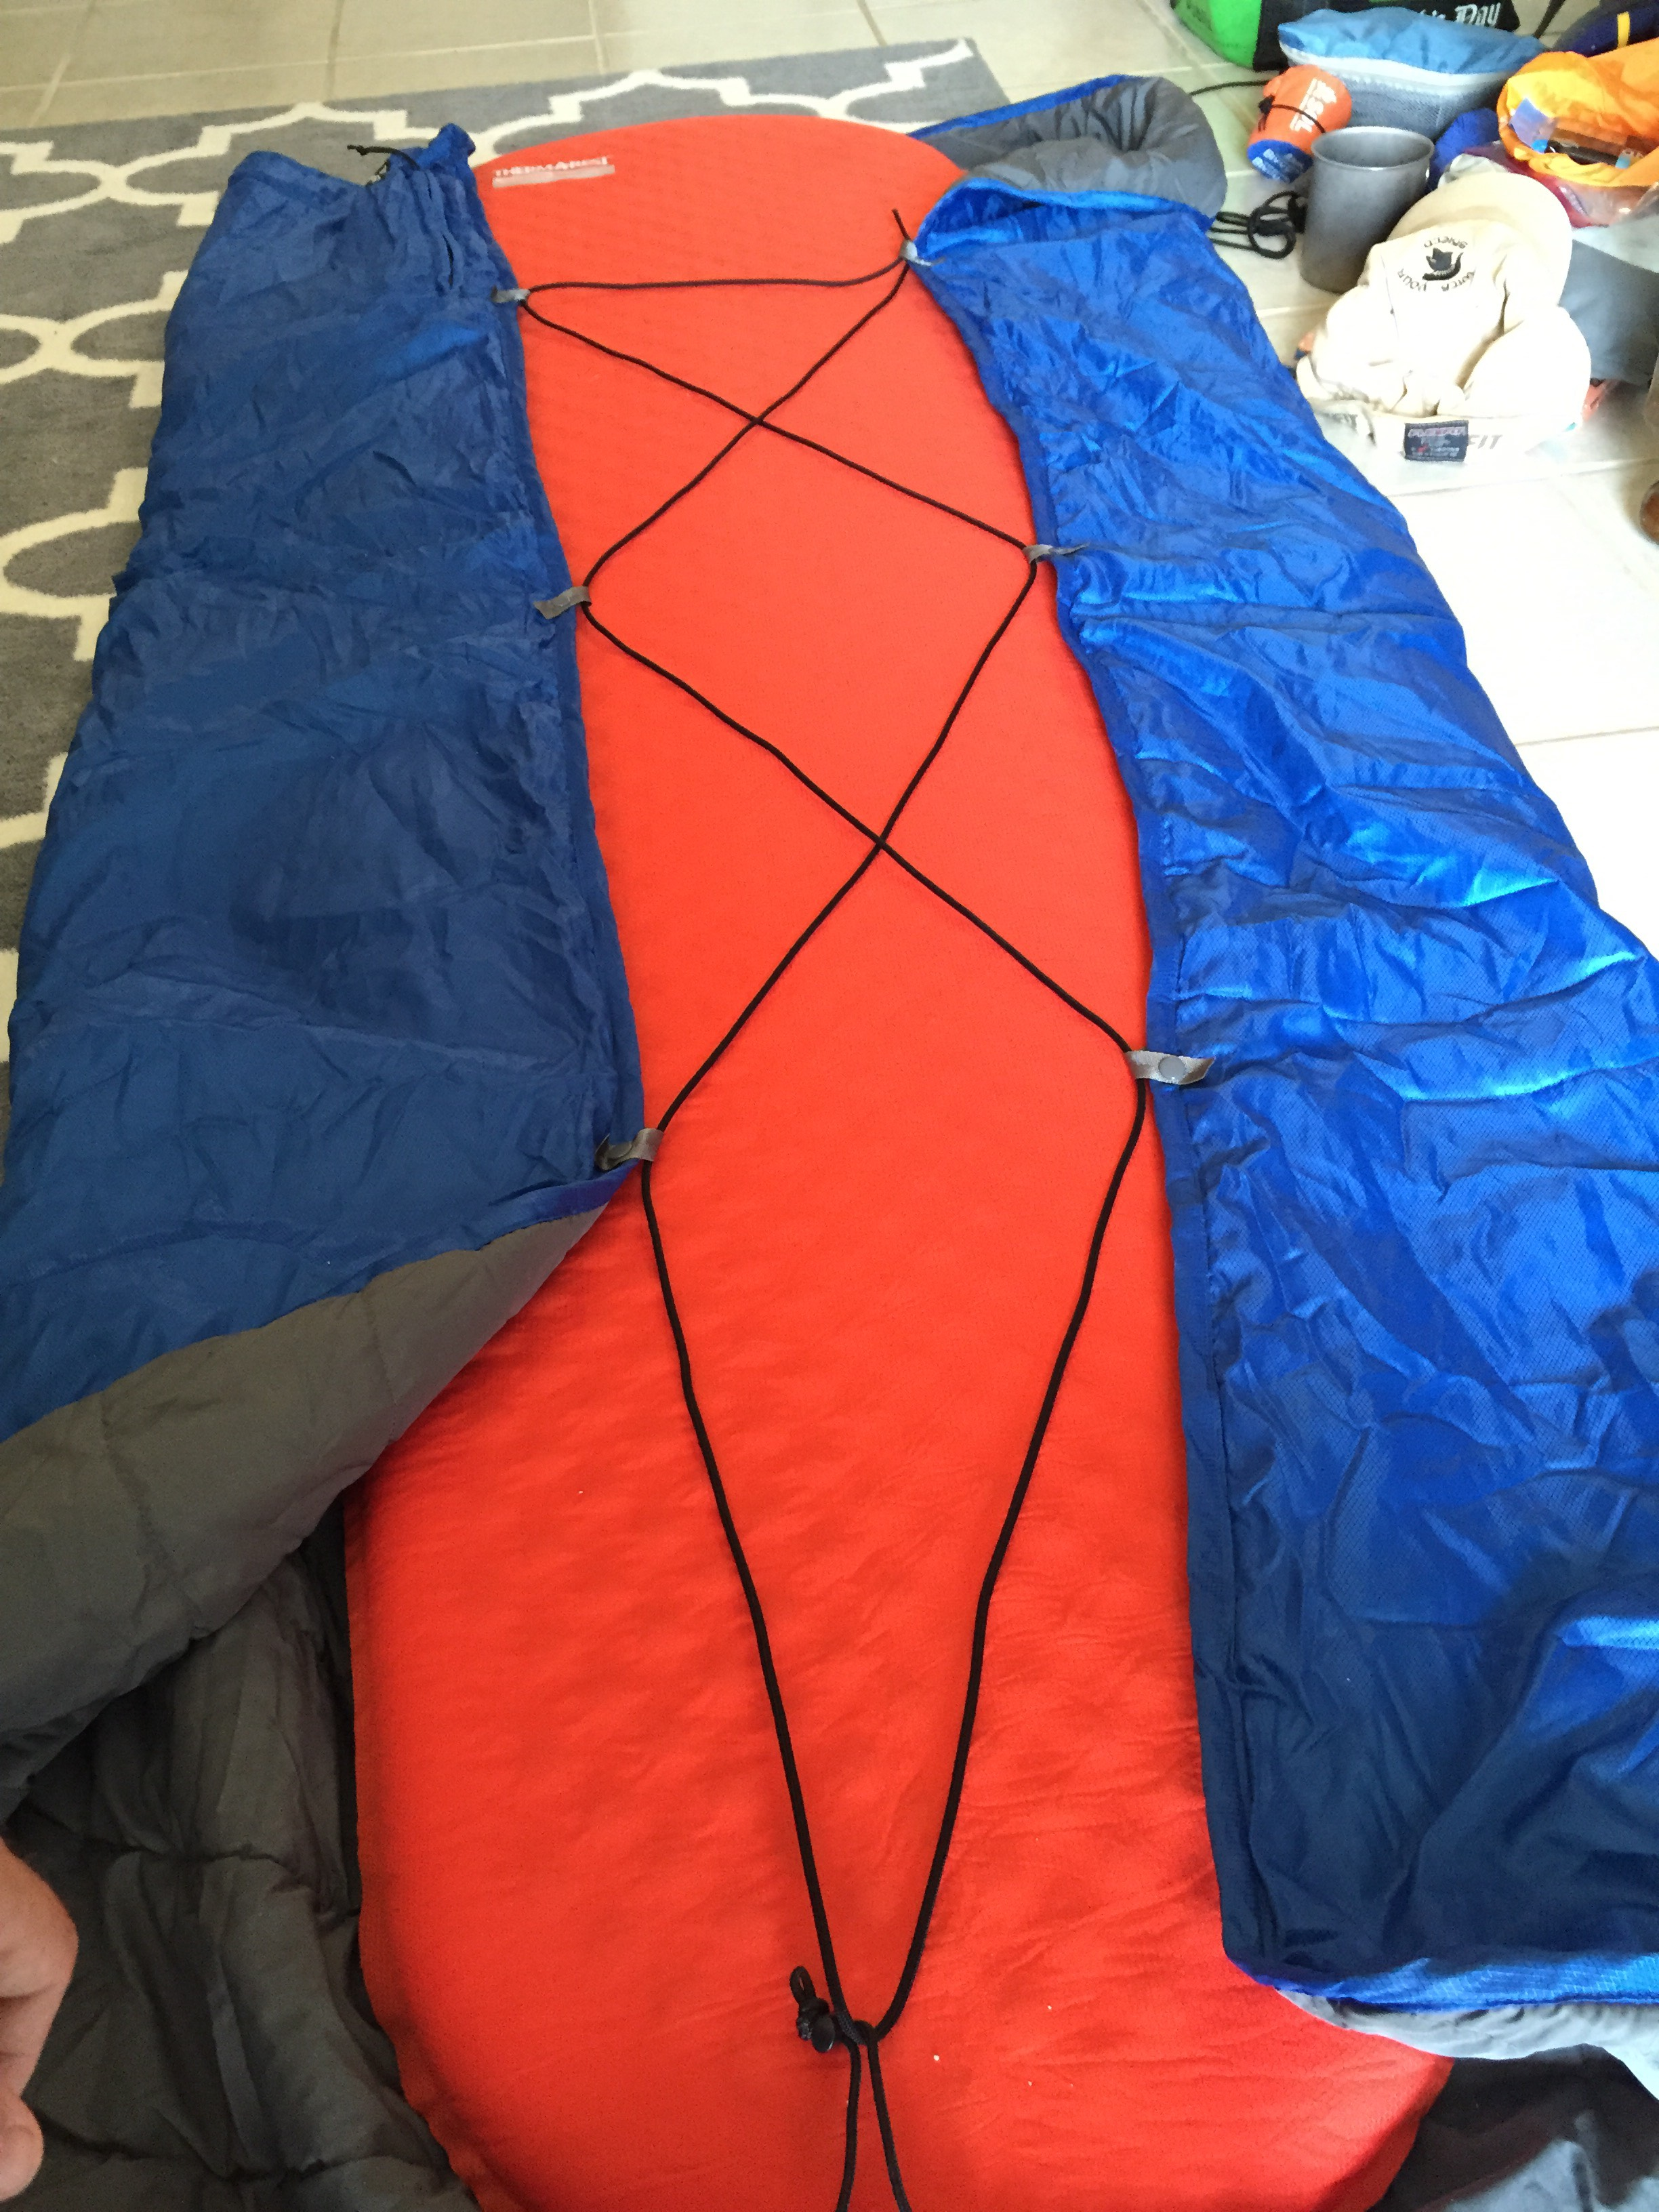 Picture of Thermarest Blanket Draft Reduction and Heat Regulation